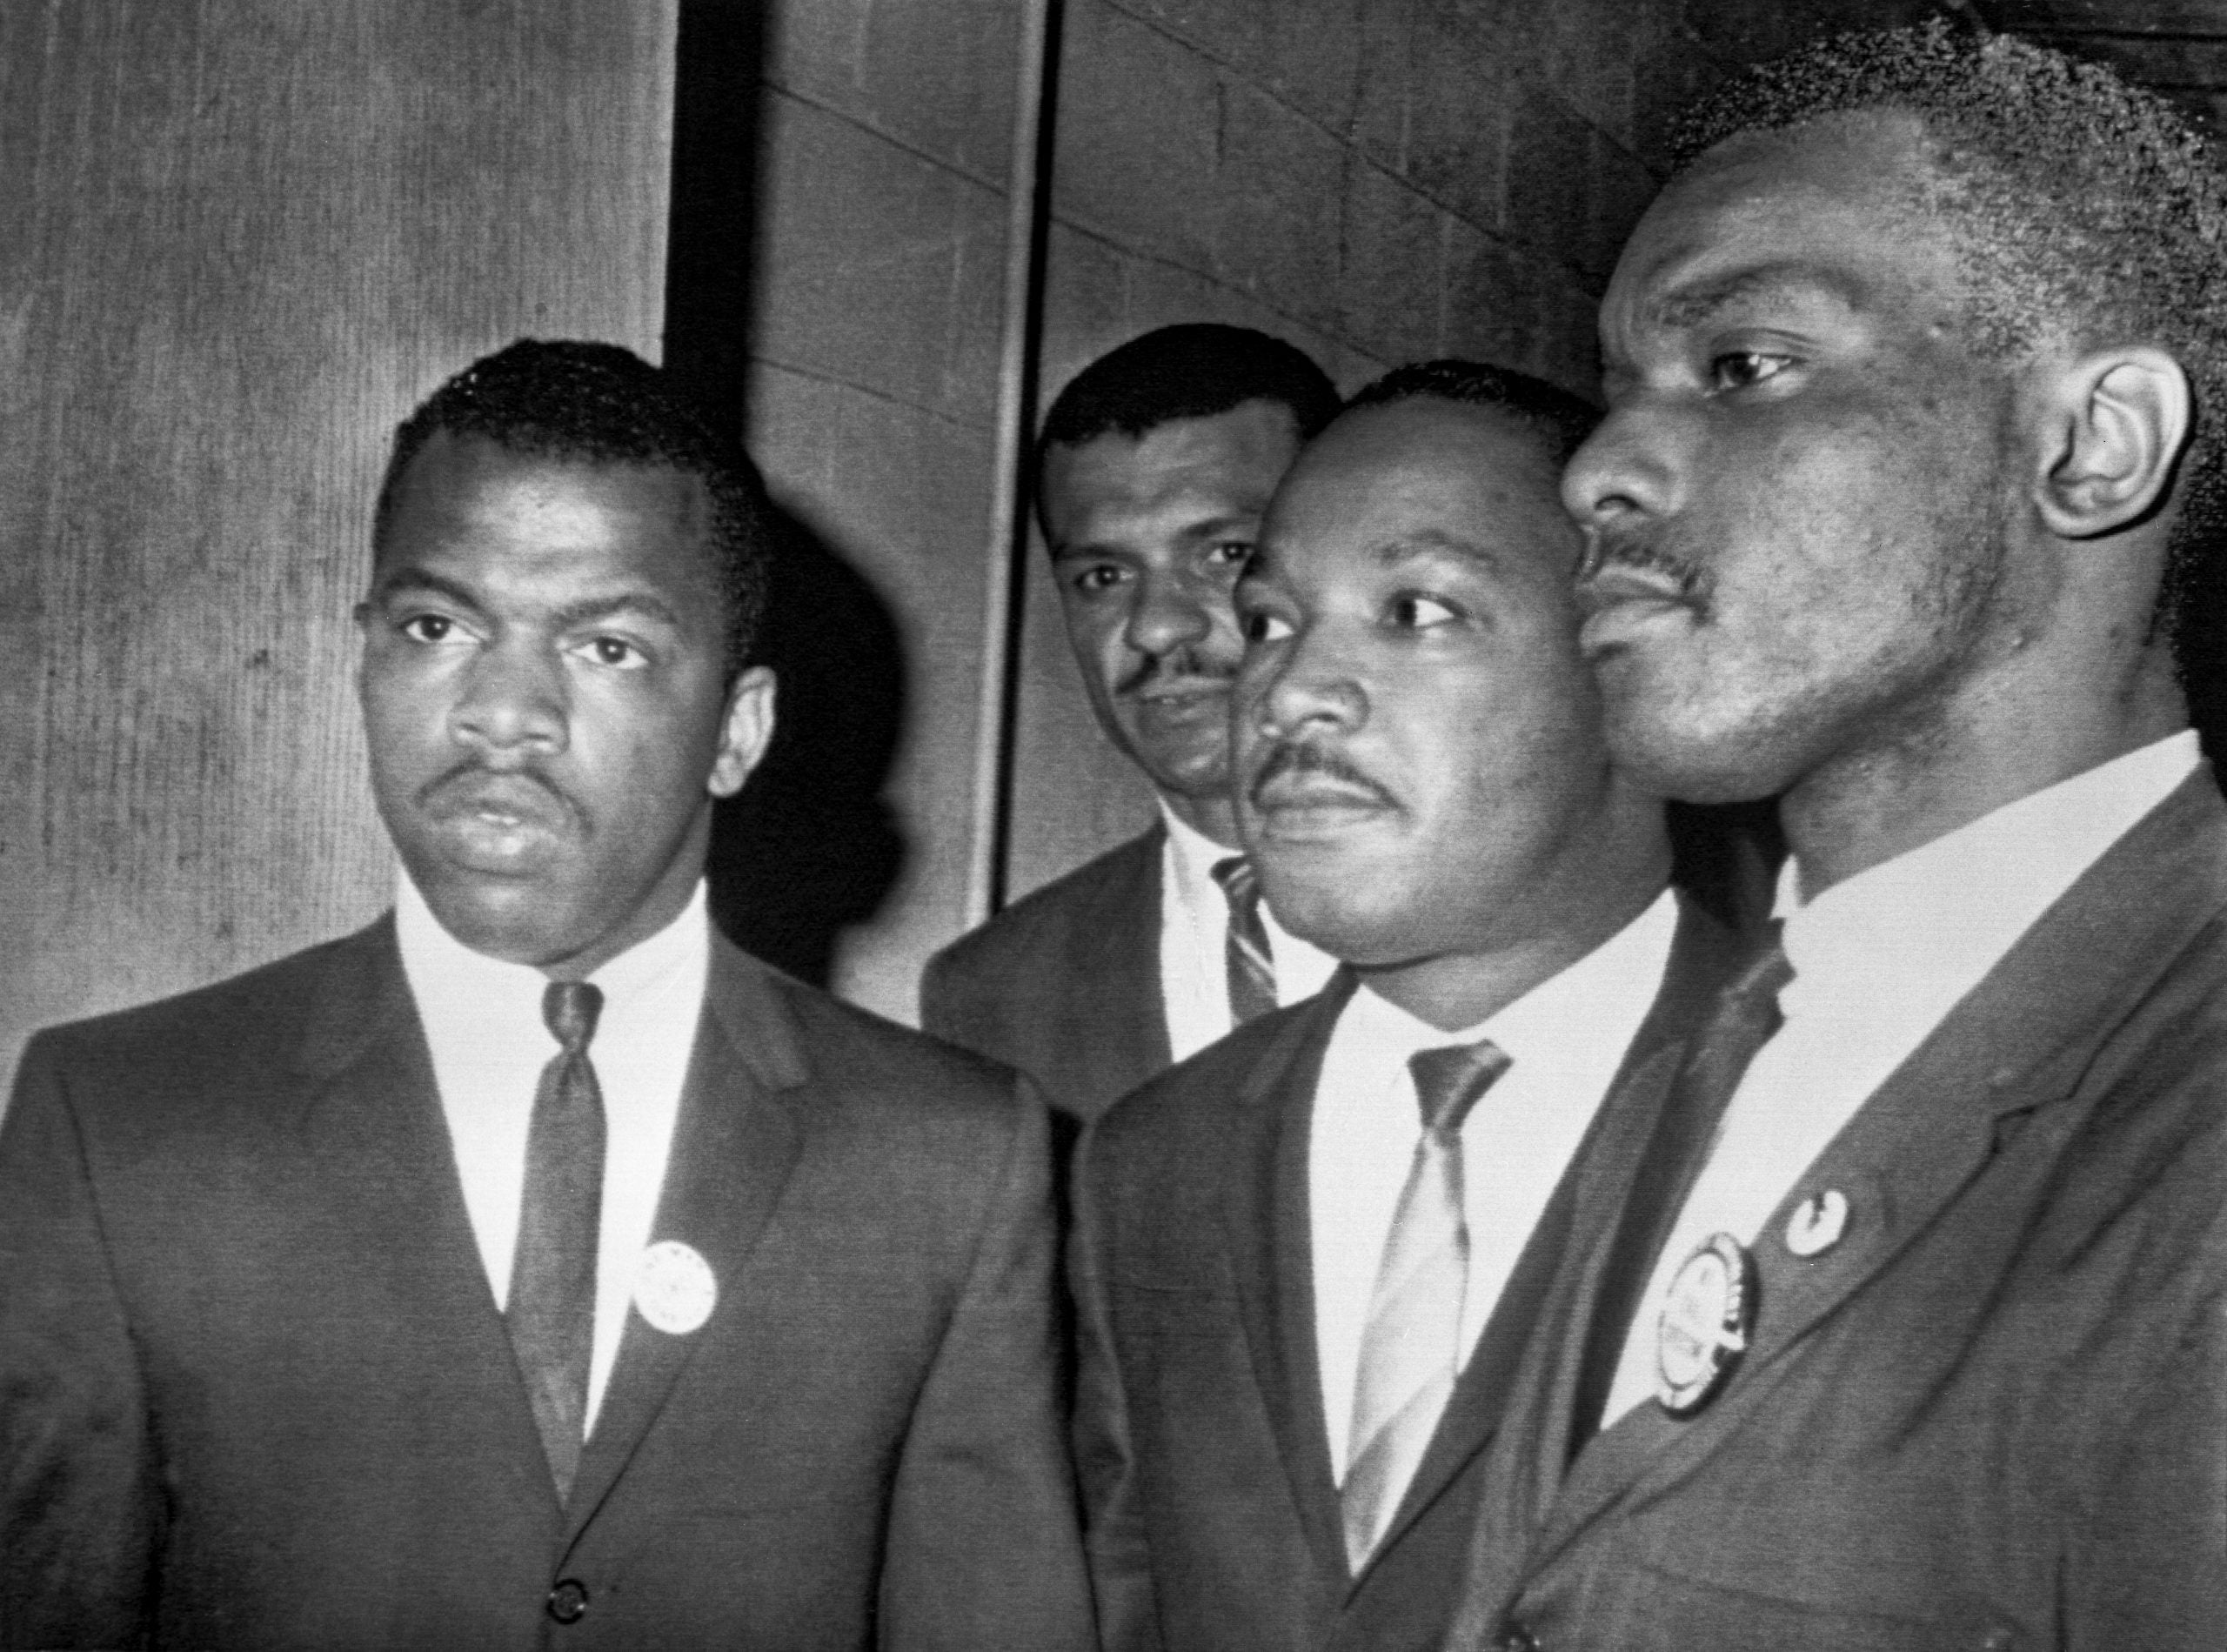 Civil rights leader John Lewis with MLK. Lewis's body will lie in state at U.S. Capitol